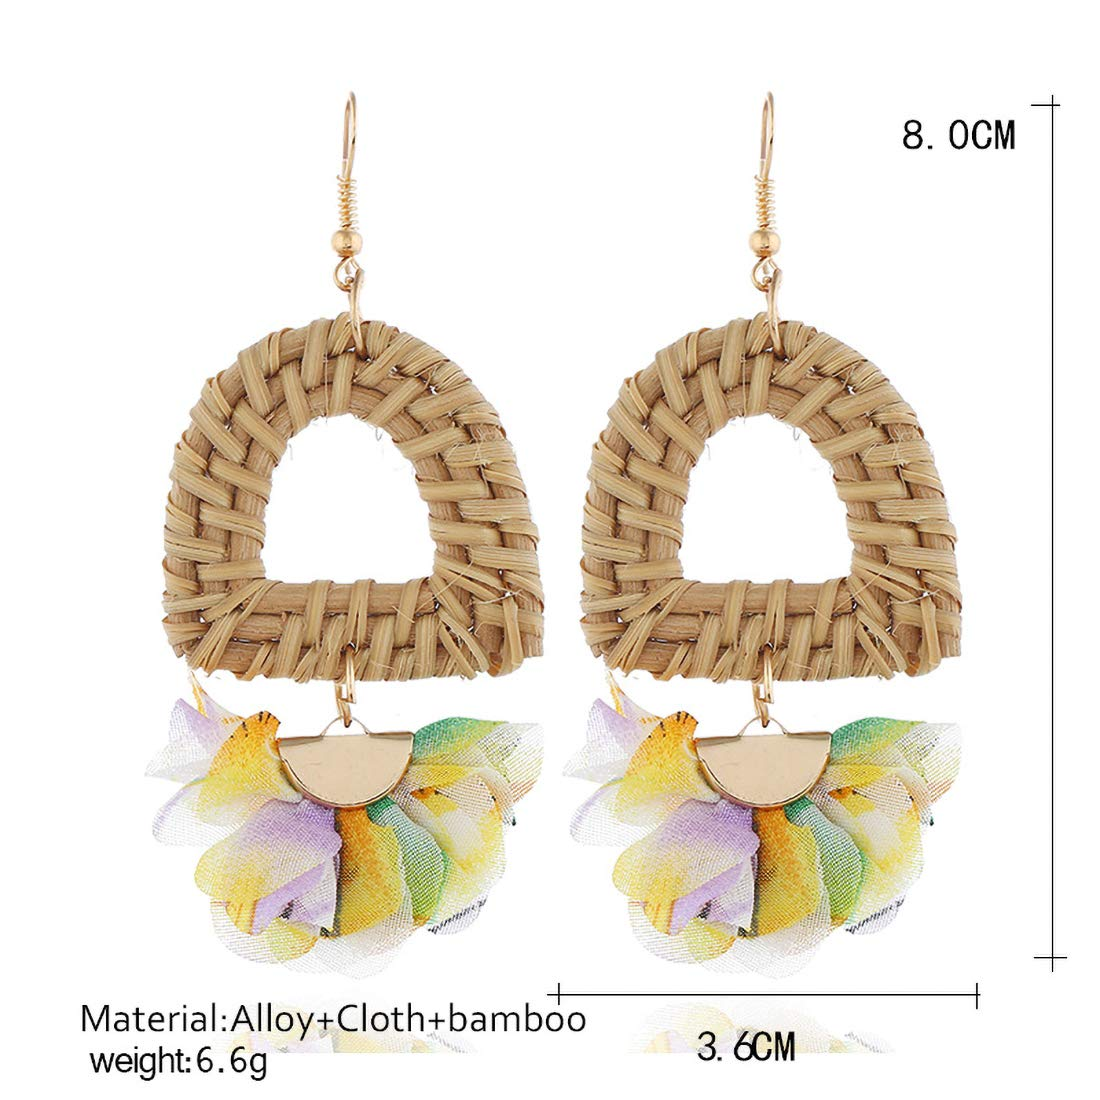 Great Gifts for Women Girls Handmade Bamboo Earrings JXVLUYE Charm Earring for Women Girls